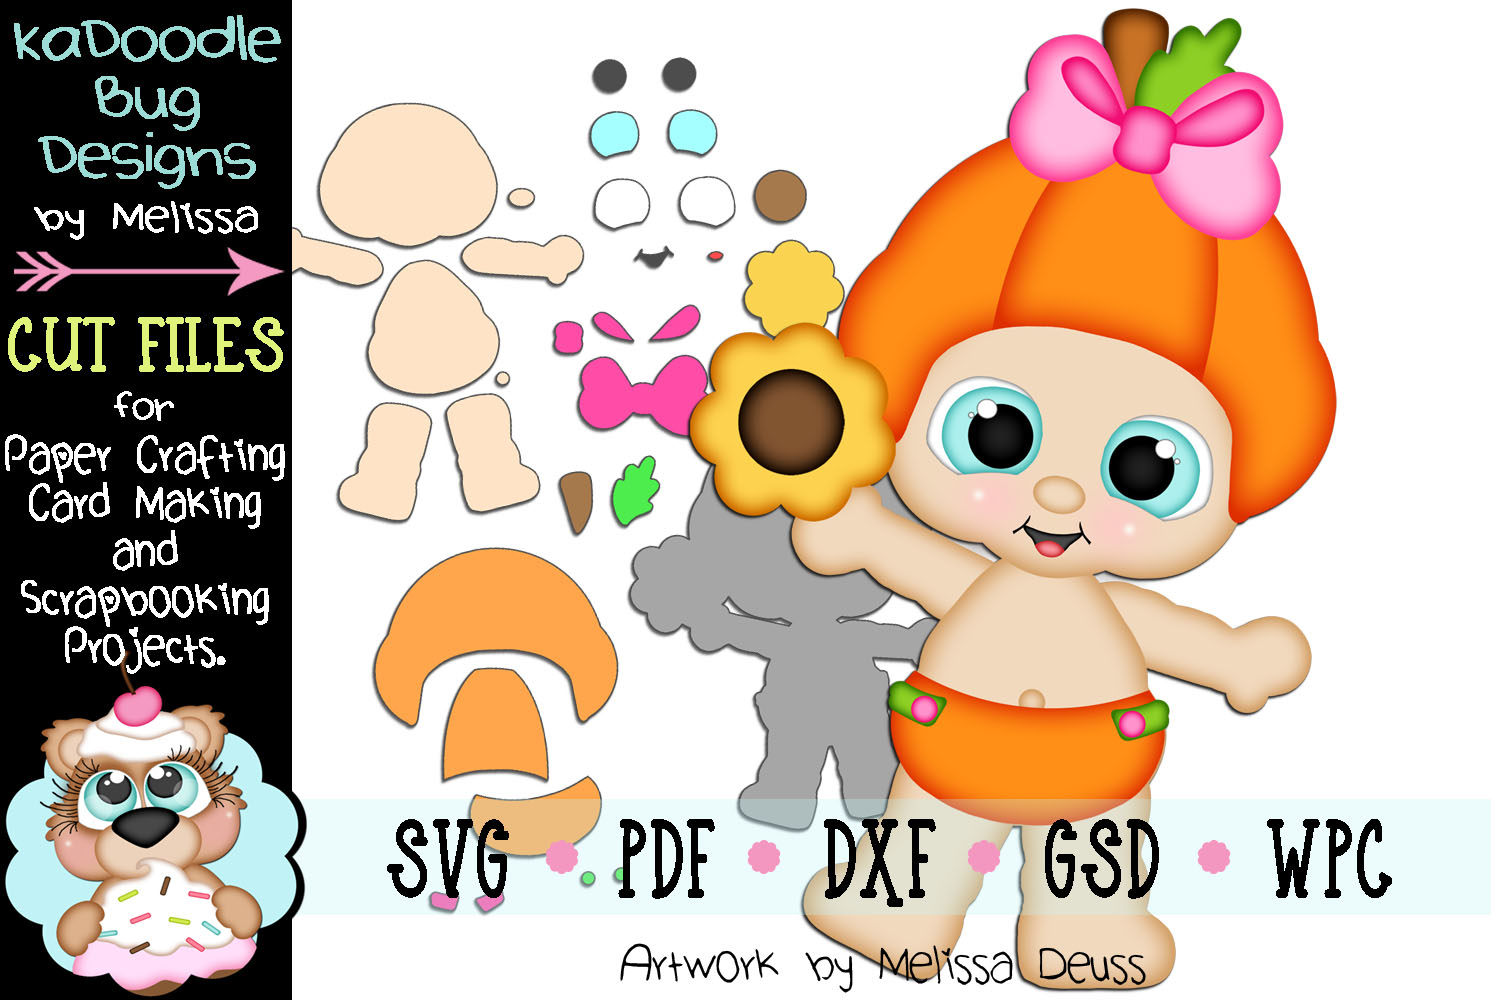 Fall Sunflower Pumpkin Girl Cut File - SVG PDF DXF GSD WPC example image 1